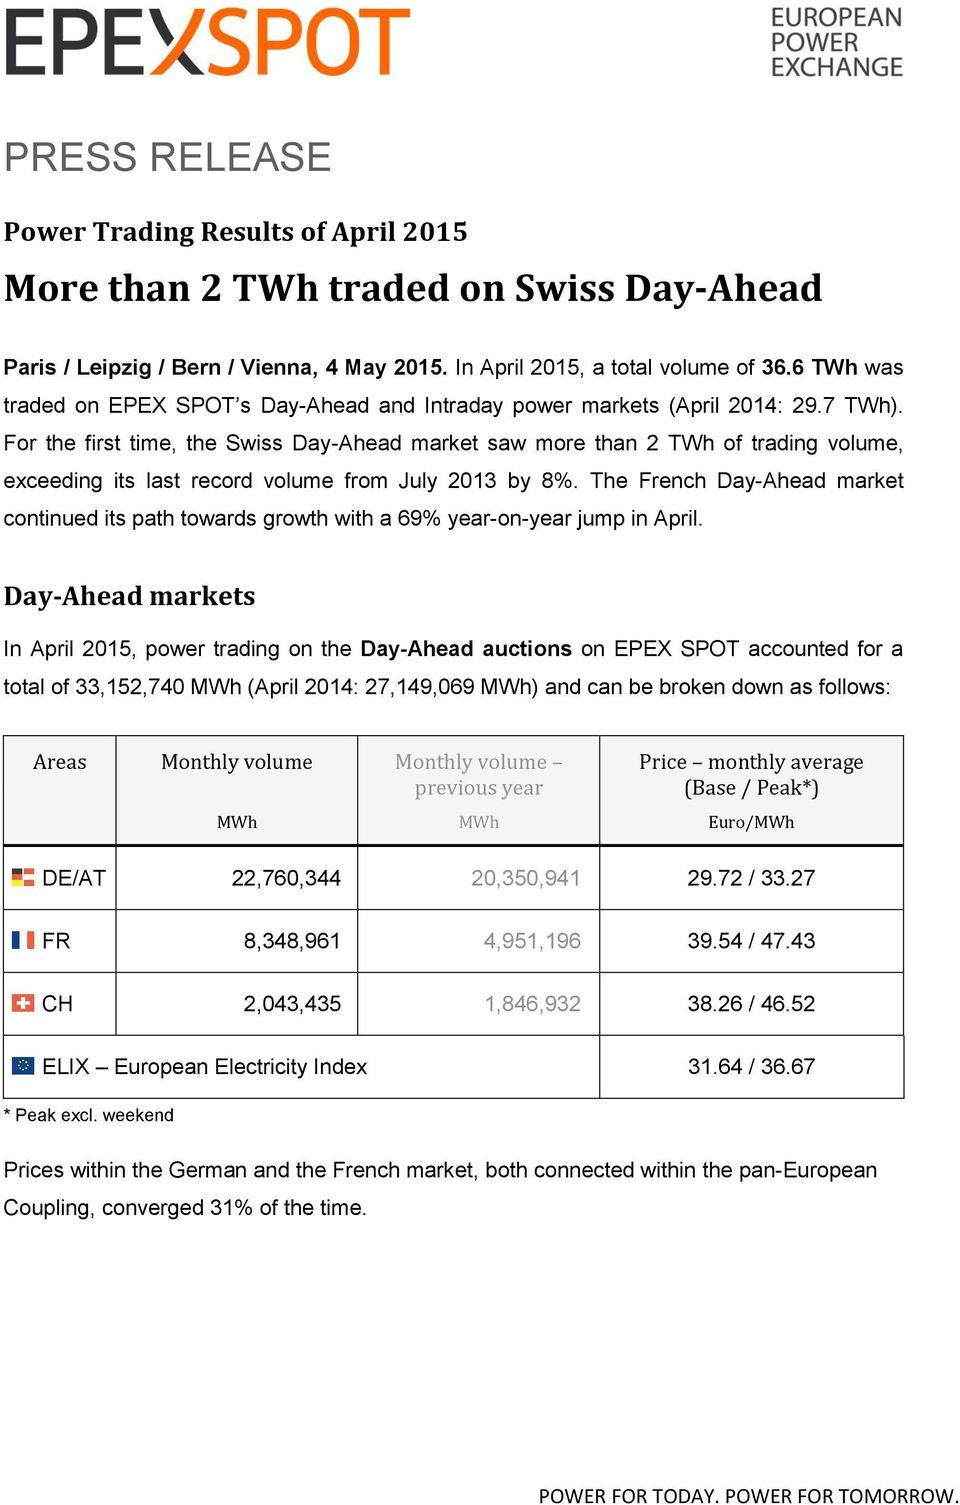 For the first time, the Swiss Day-Ahead market saw more than 2 TWh of trading volume, exceeding its last record volume from July 2013 by 8%.